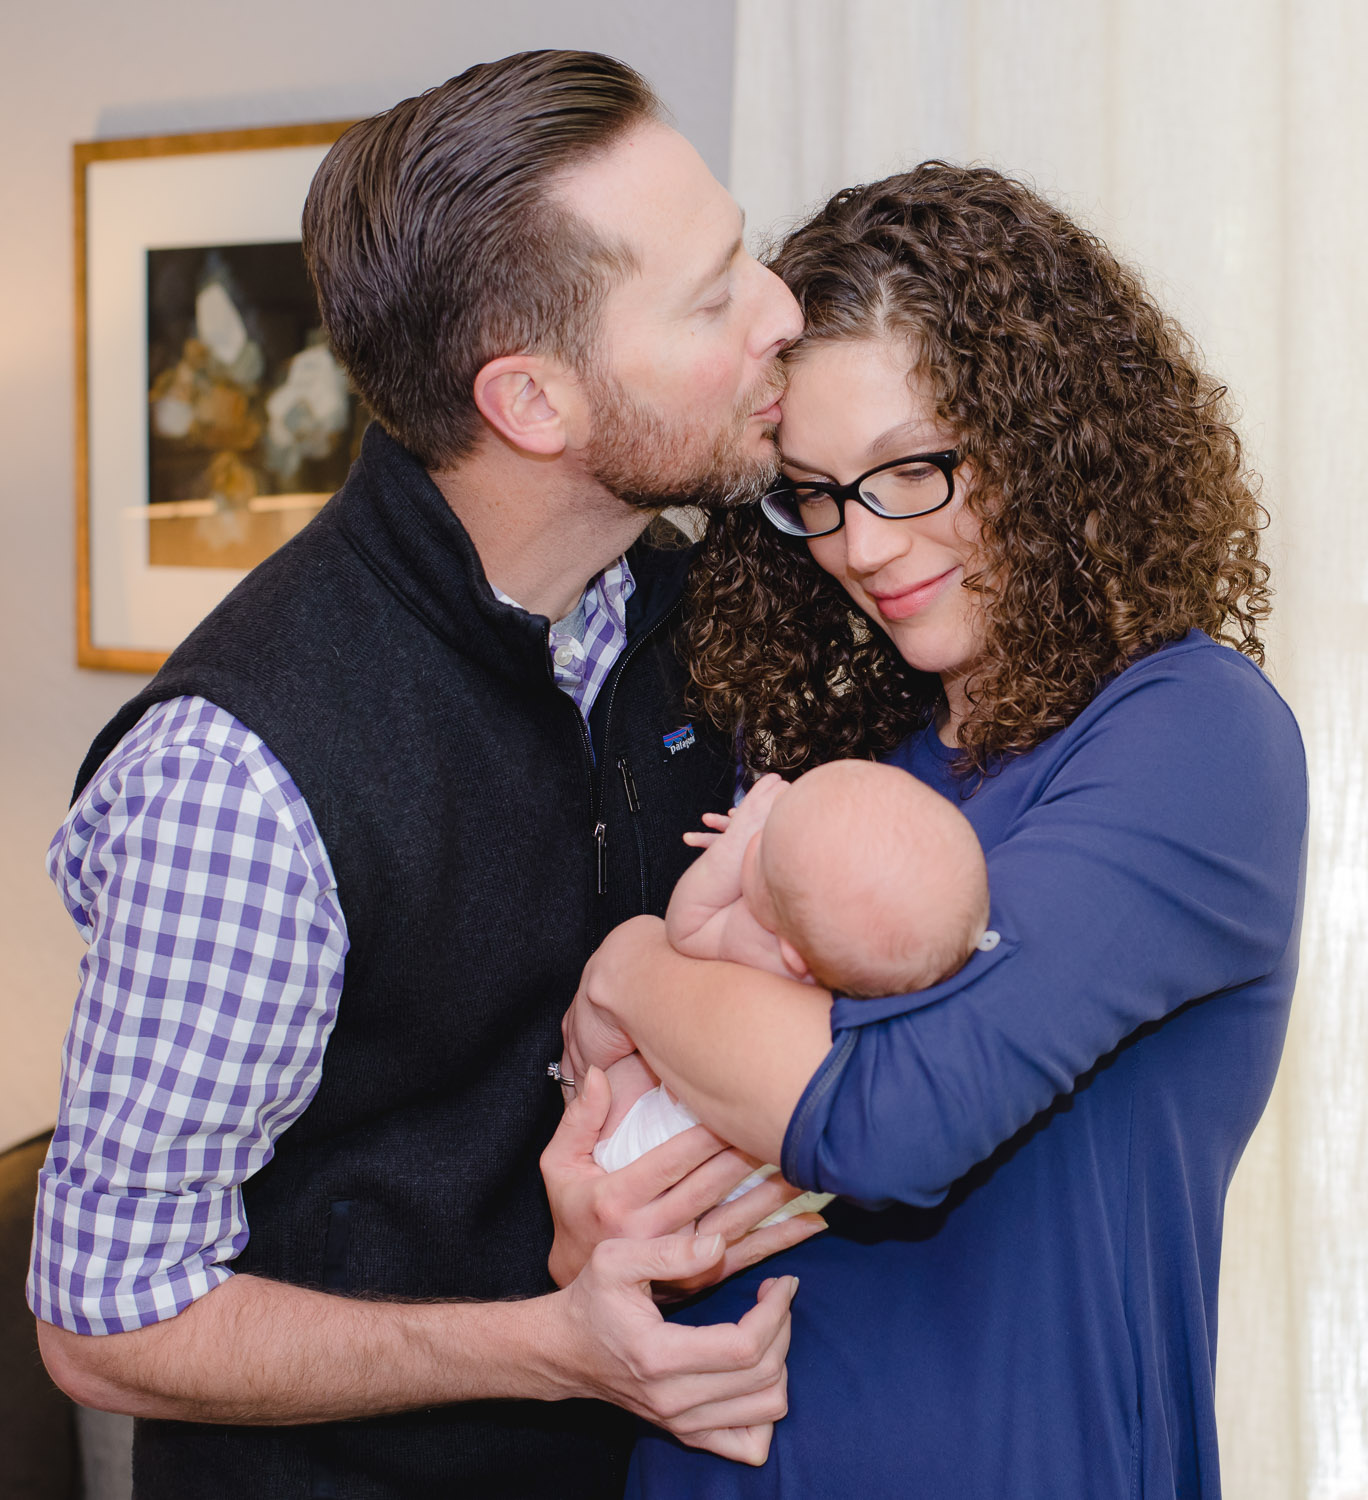 Husband giving a big kiss to his wife on her forehead while she is holding their newborn daughter.